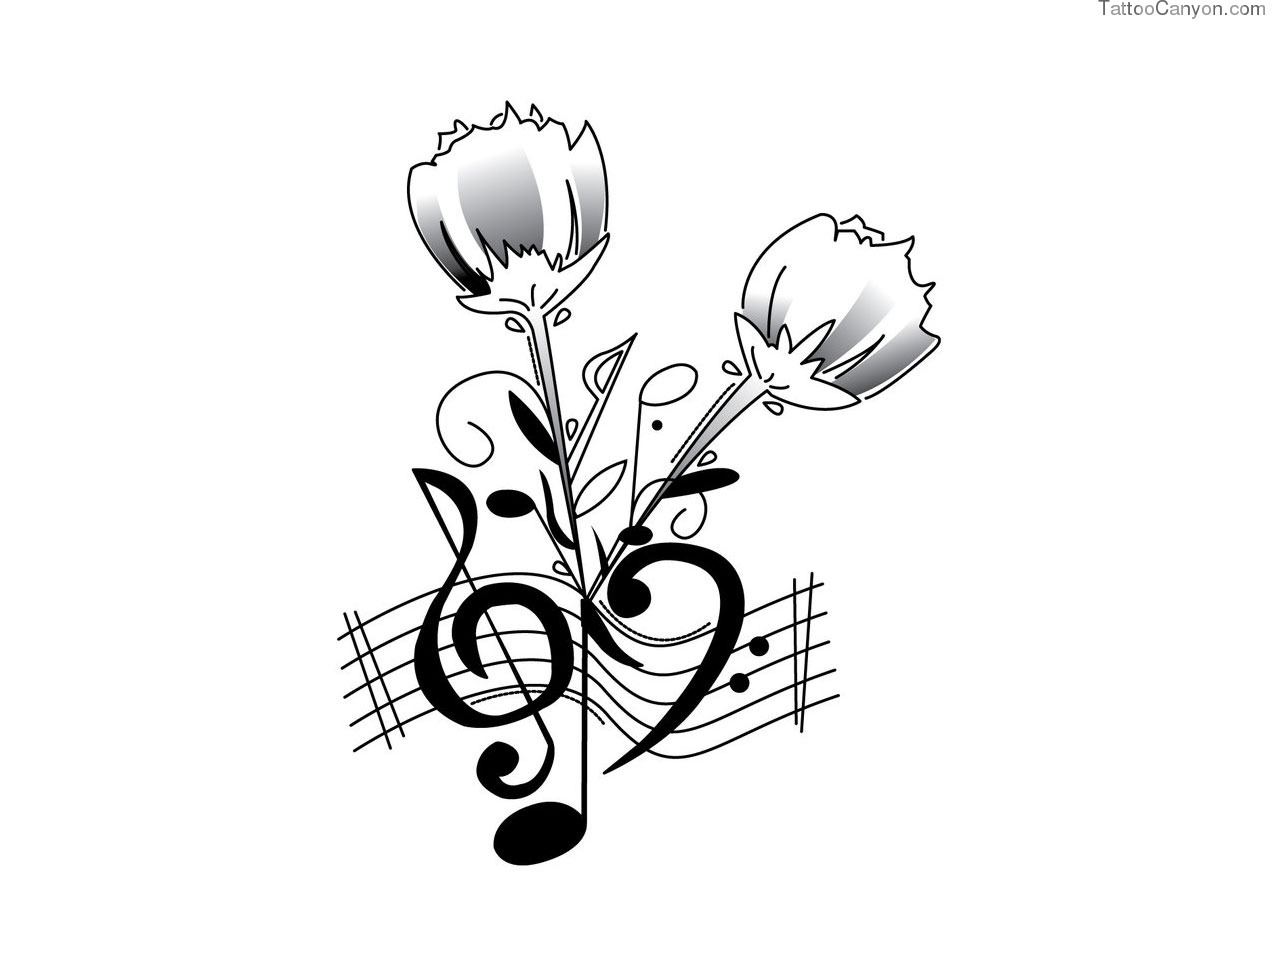 Roses and Music Note Tattoo Designs